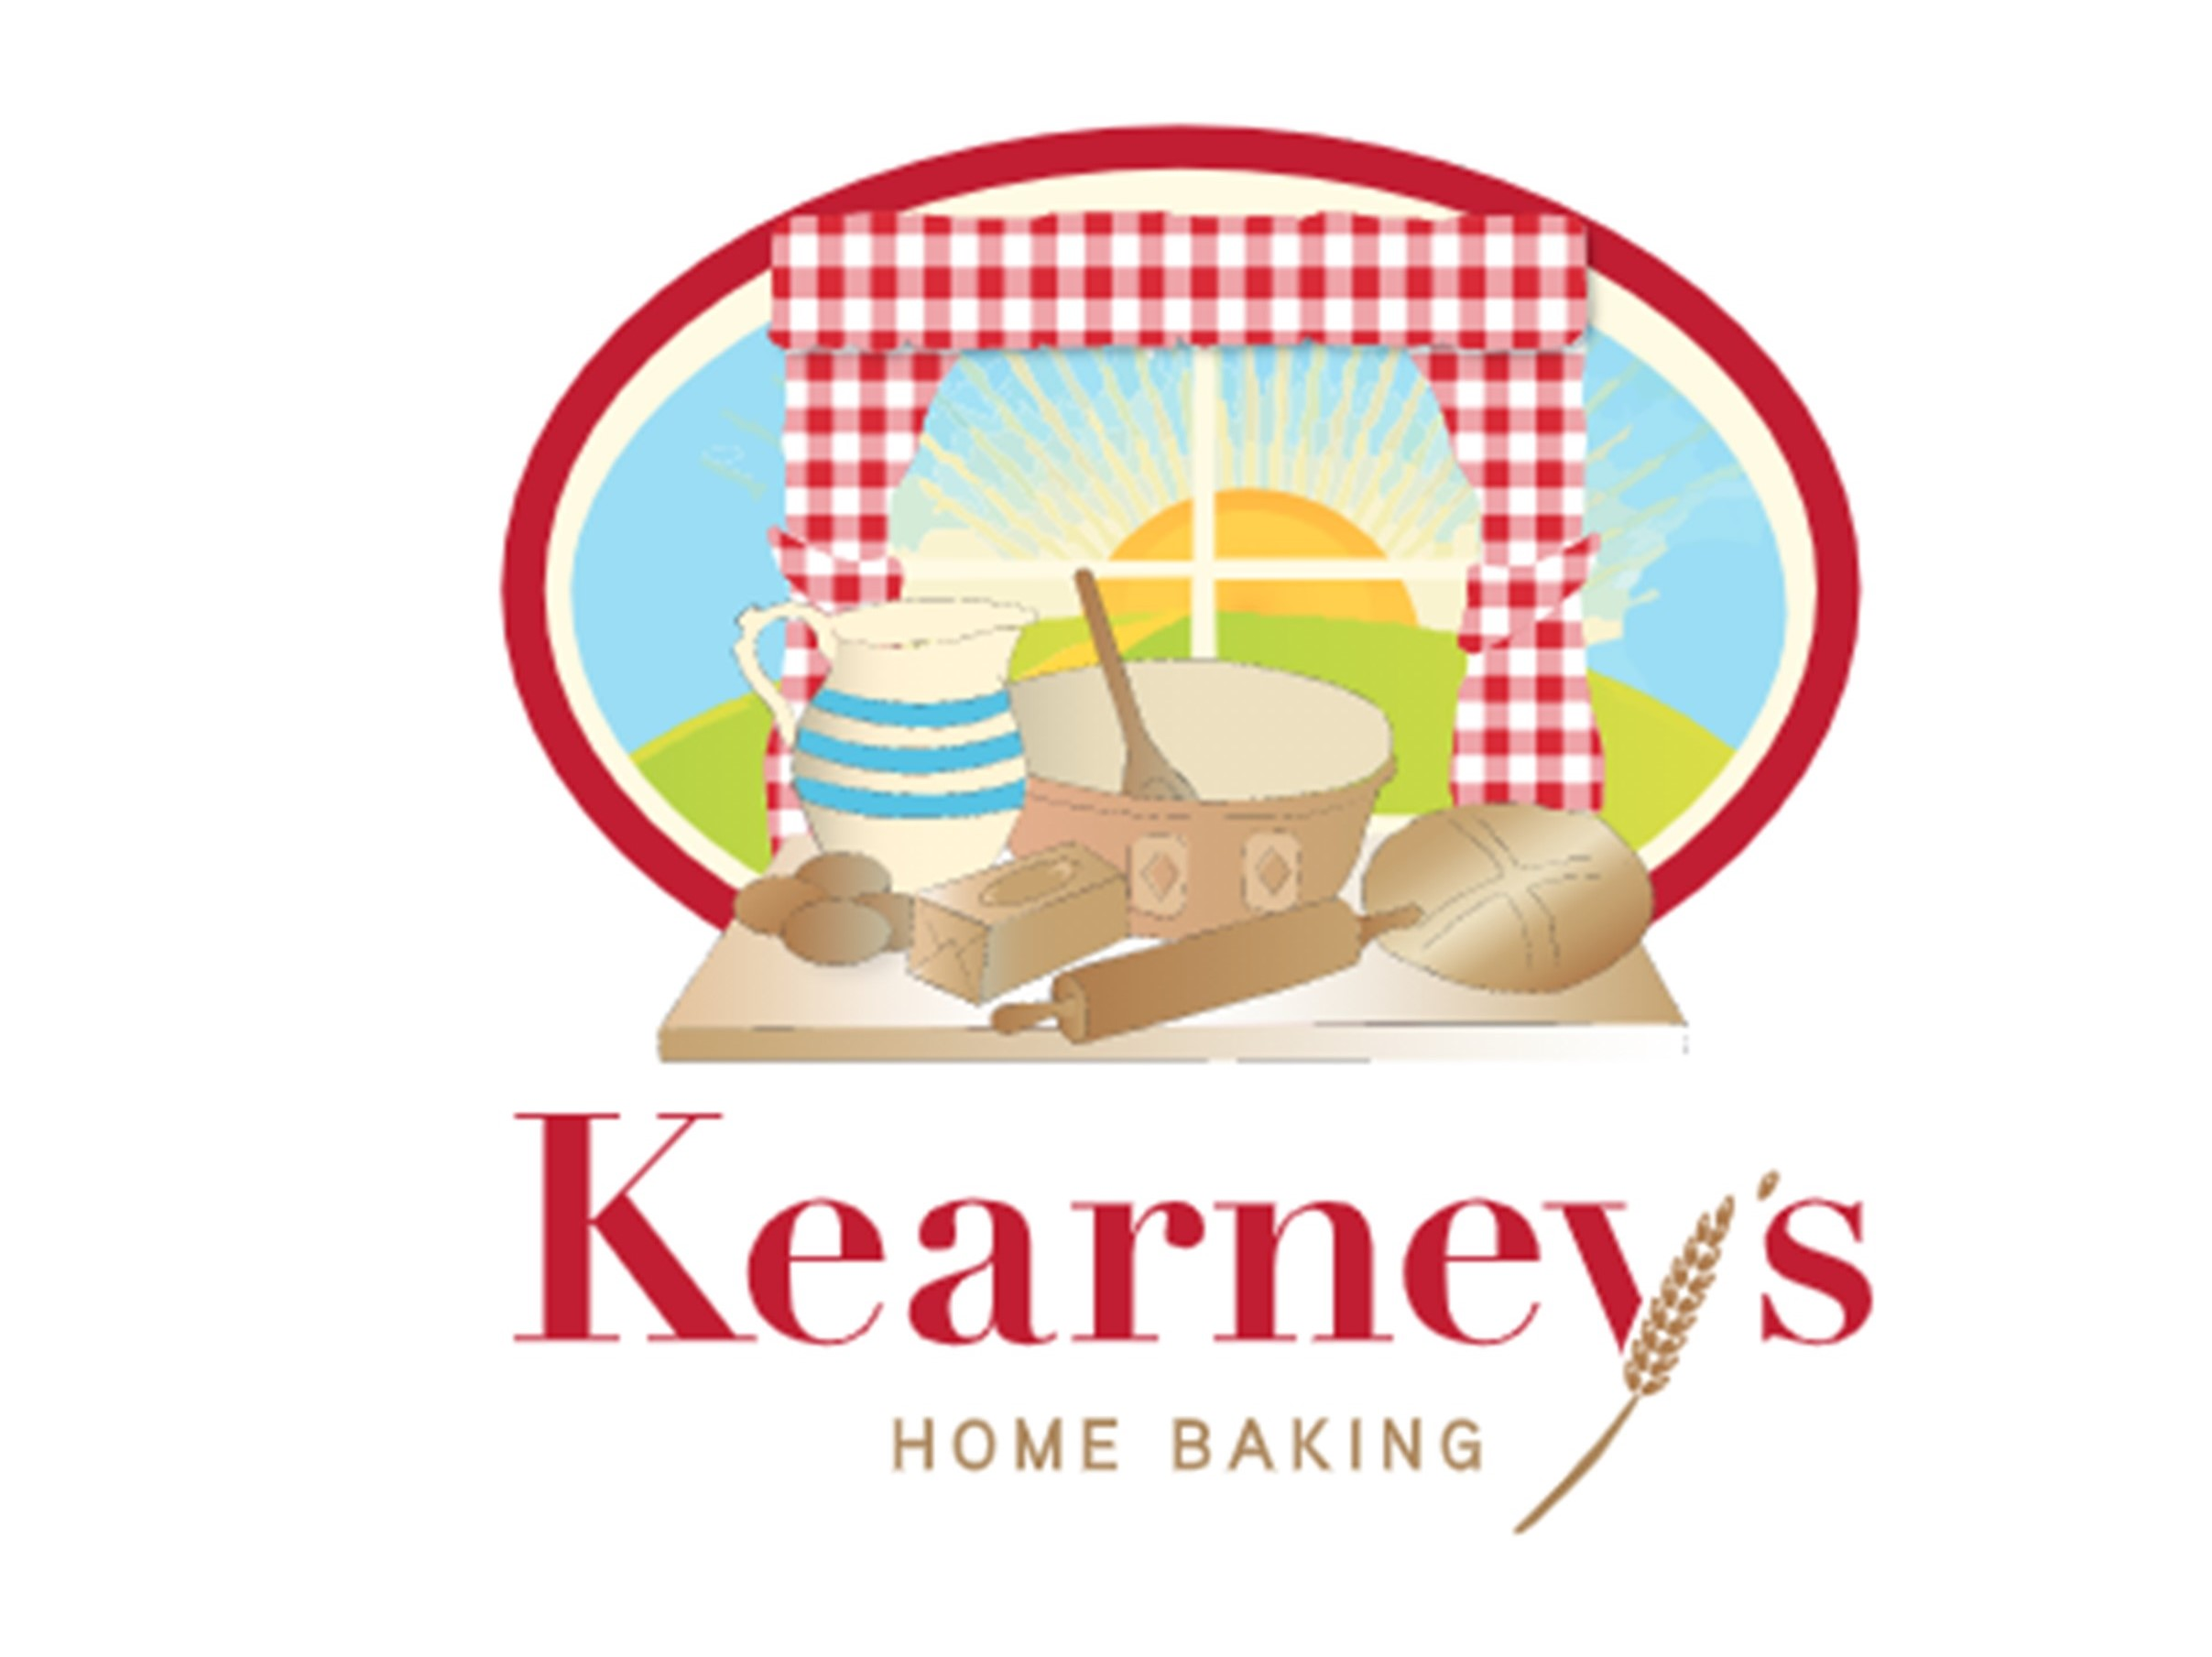 Kearney's Home Baking Ltd